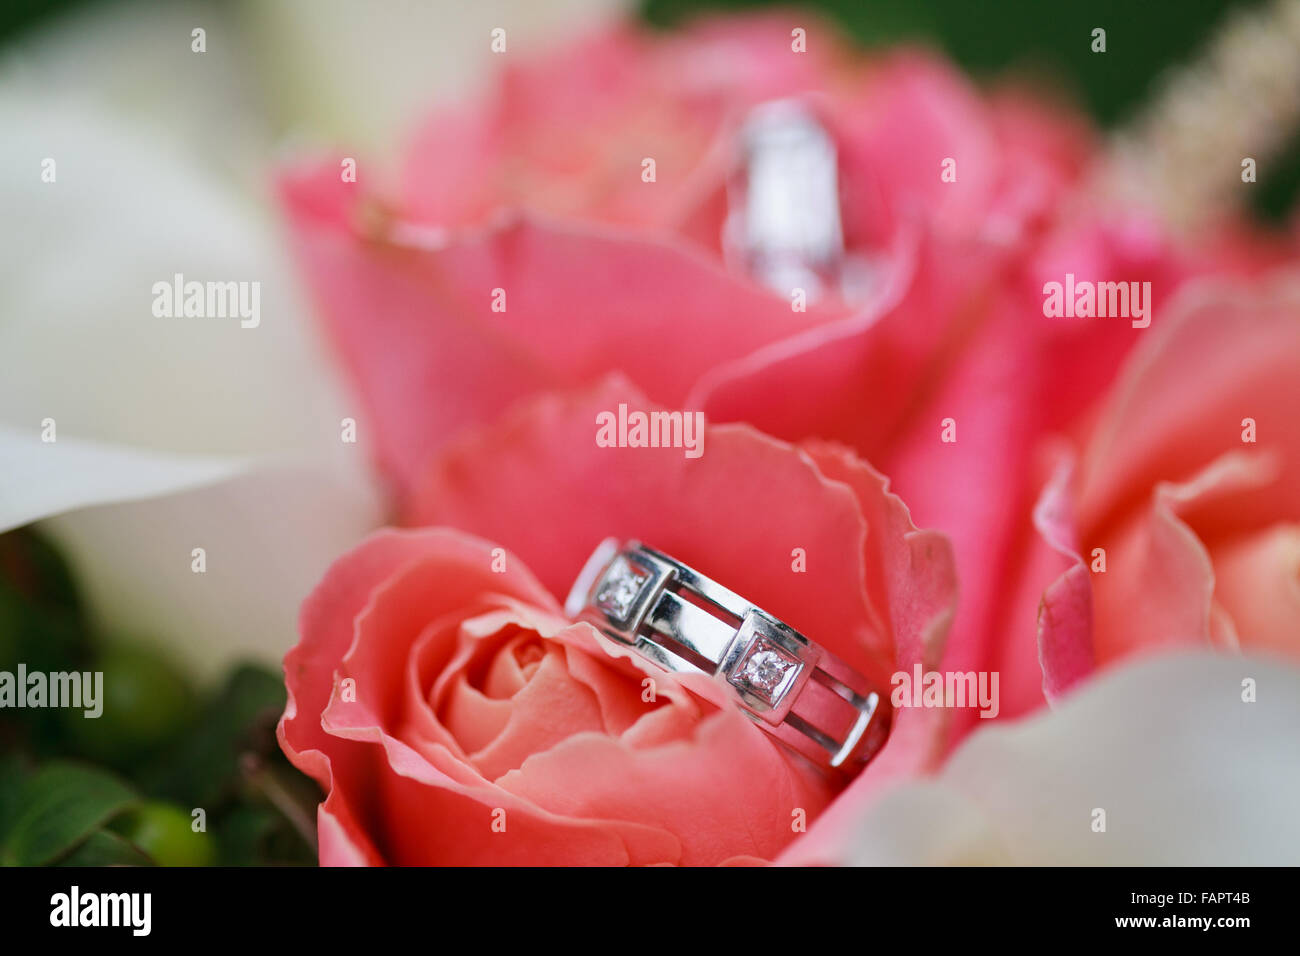 Beautiful wedding rings on the flowers Stock Photo: 92700283 - Alamy